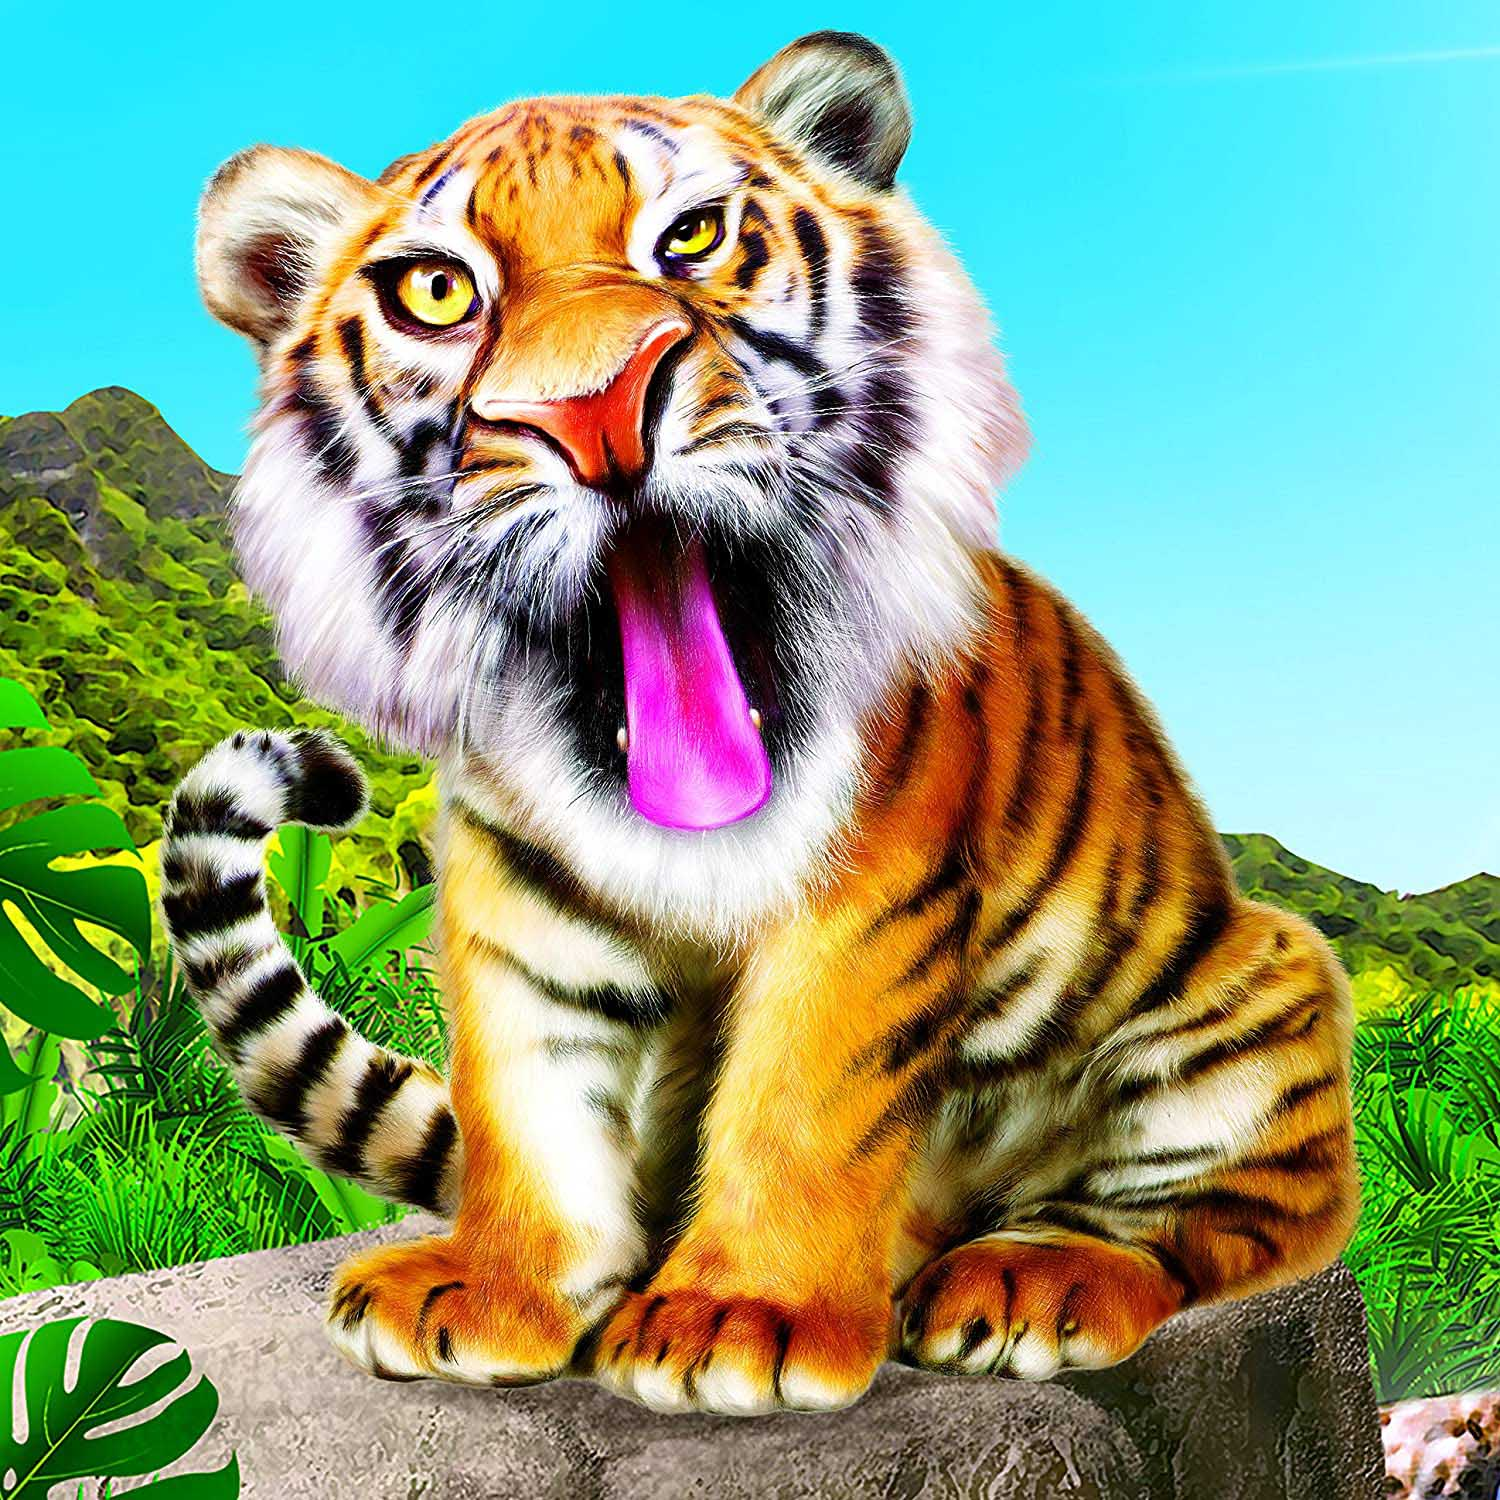 Animal Club Cube Tiger Tigers Jigsaw Puzzle